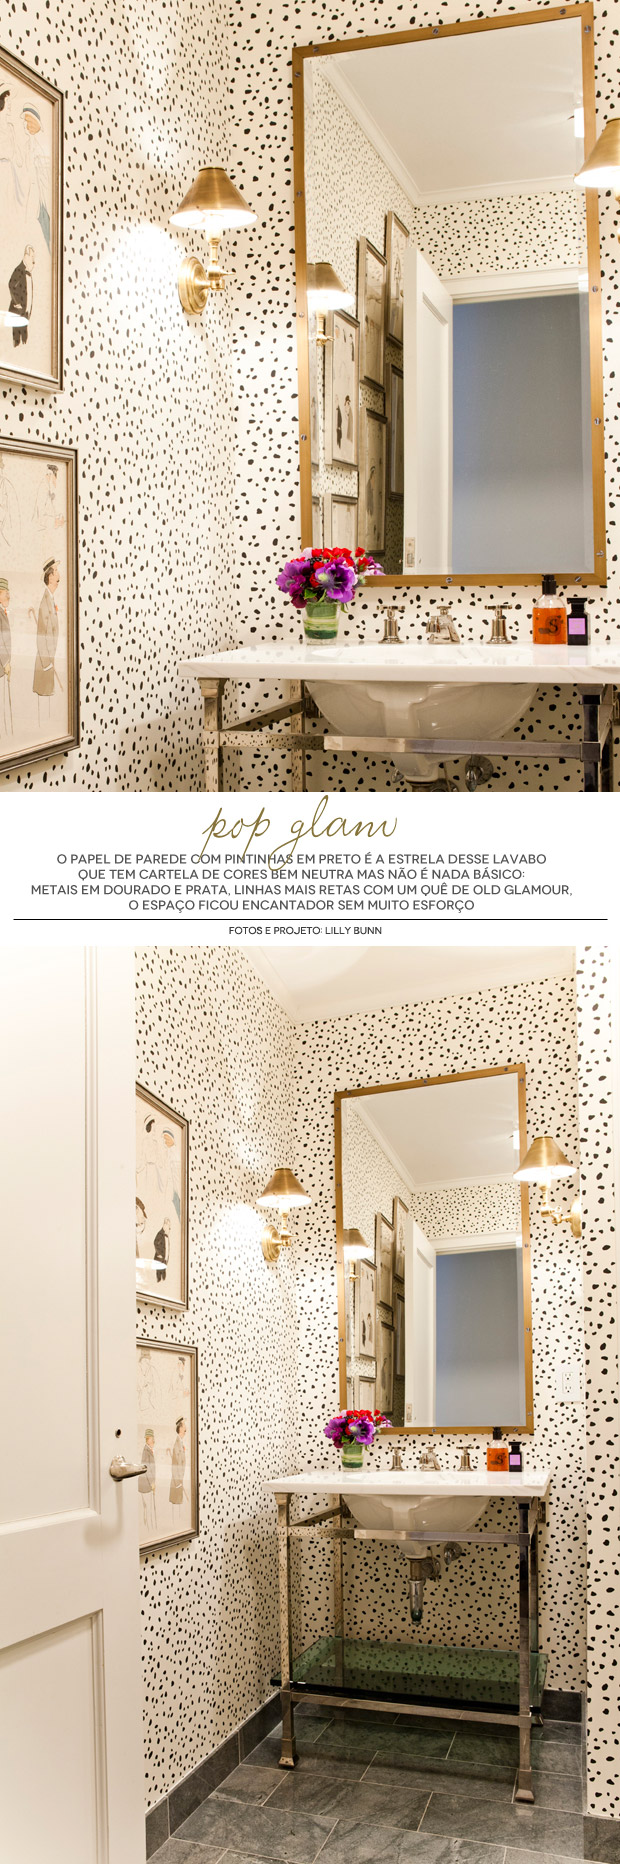 fashion-gazette-barbara-resende-decor-dia-lavabo-pop-glam